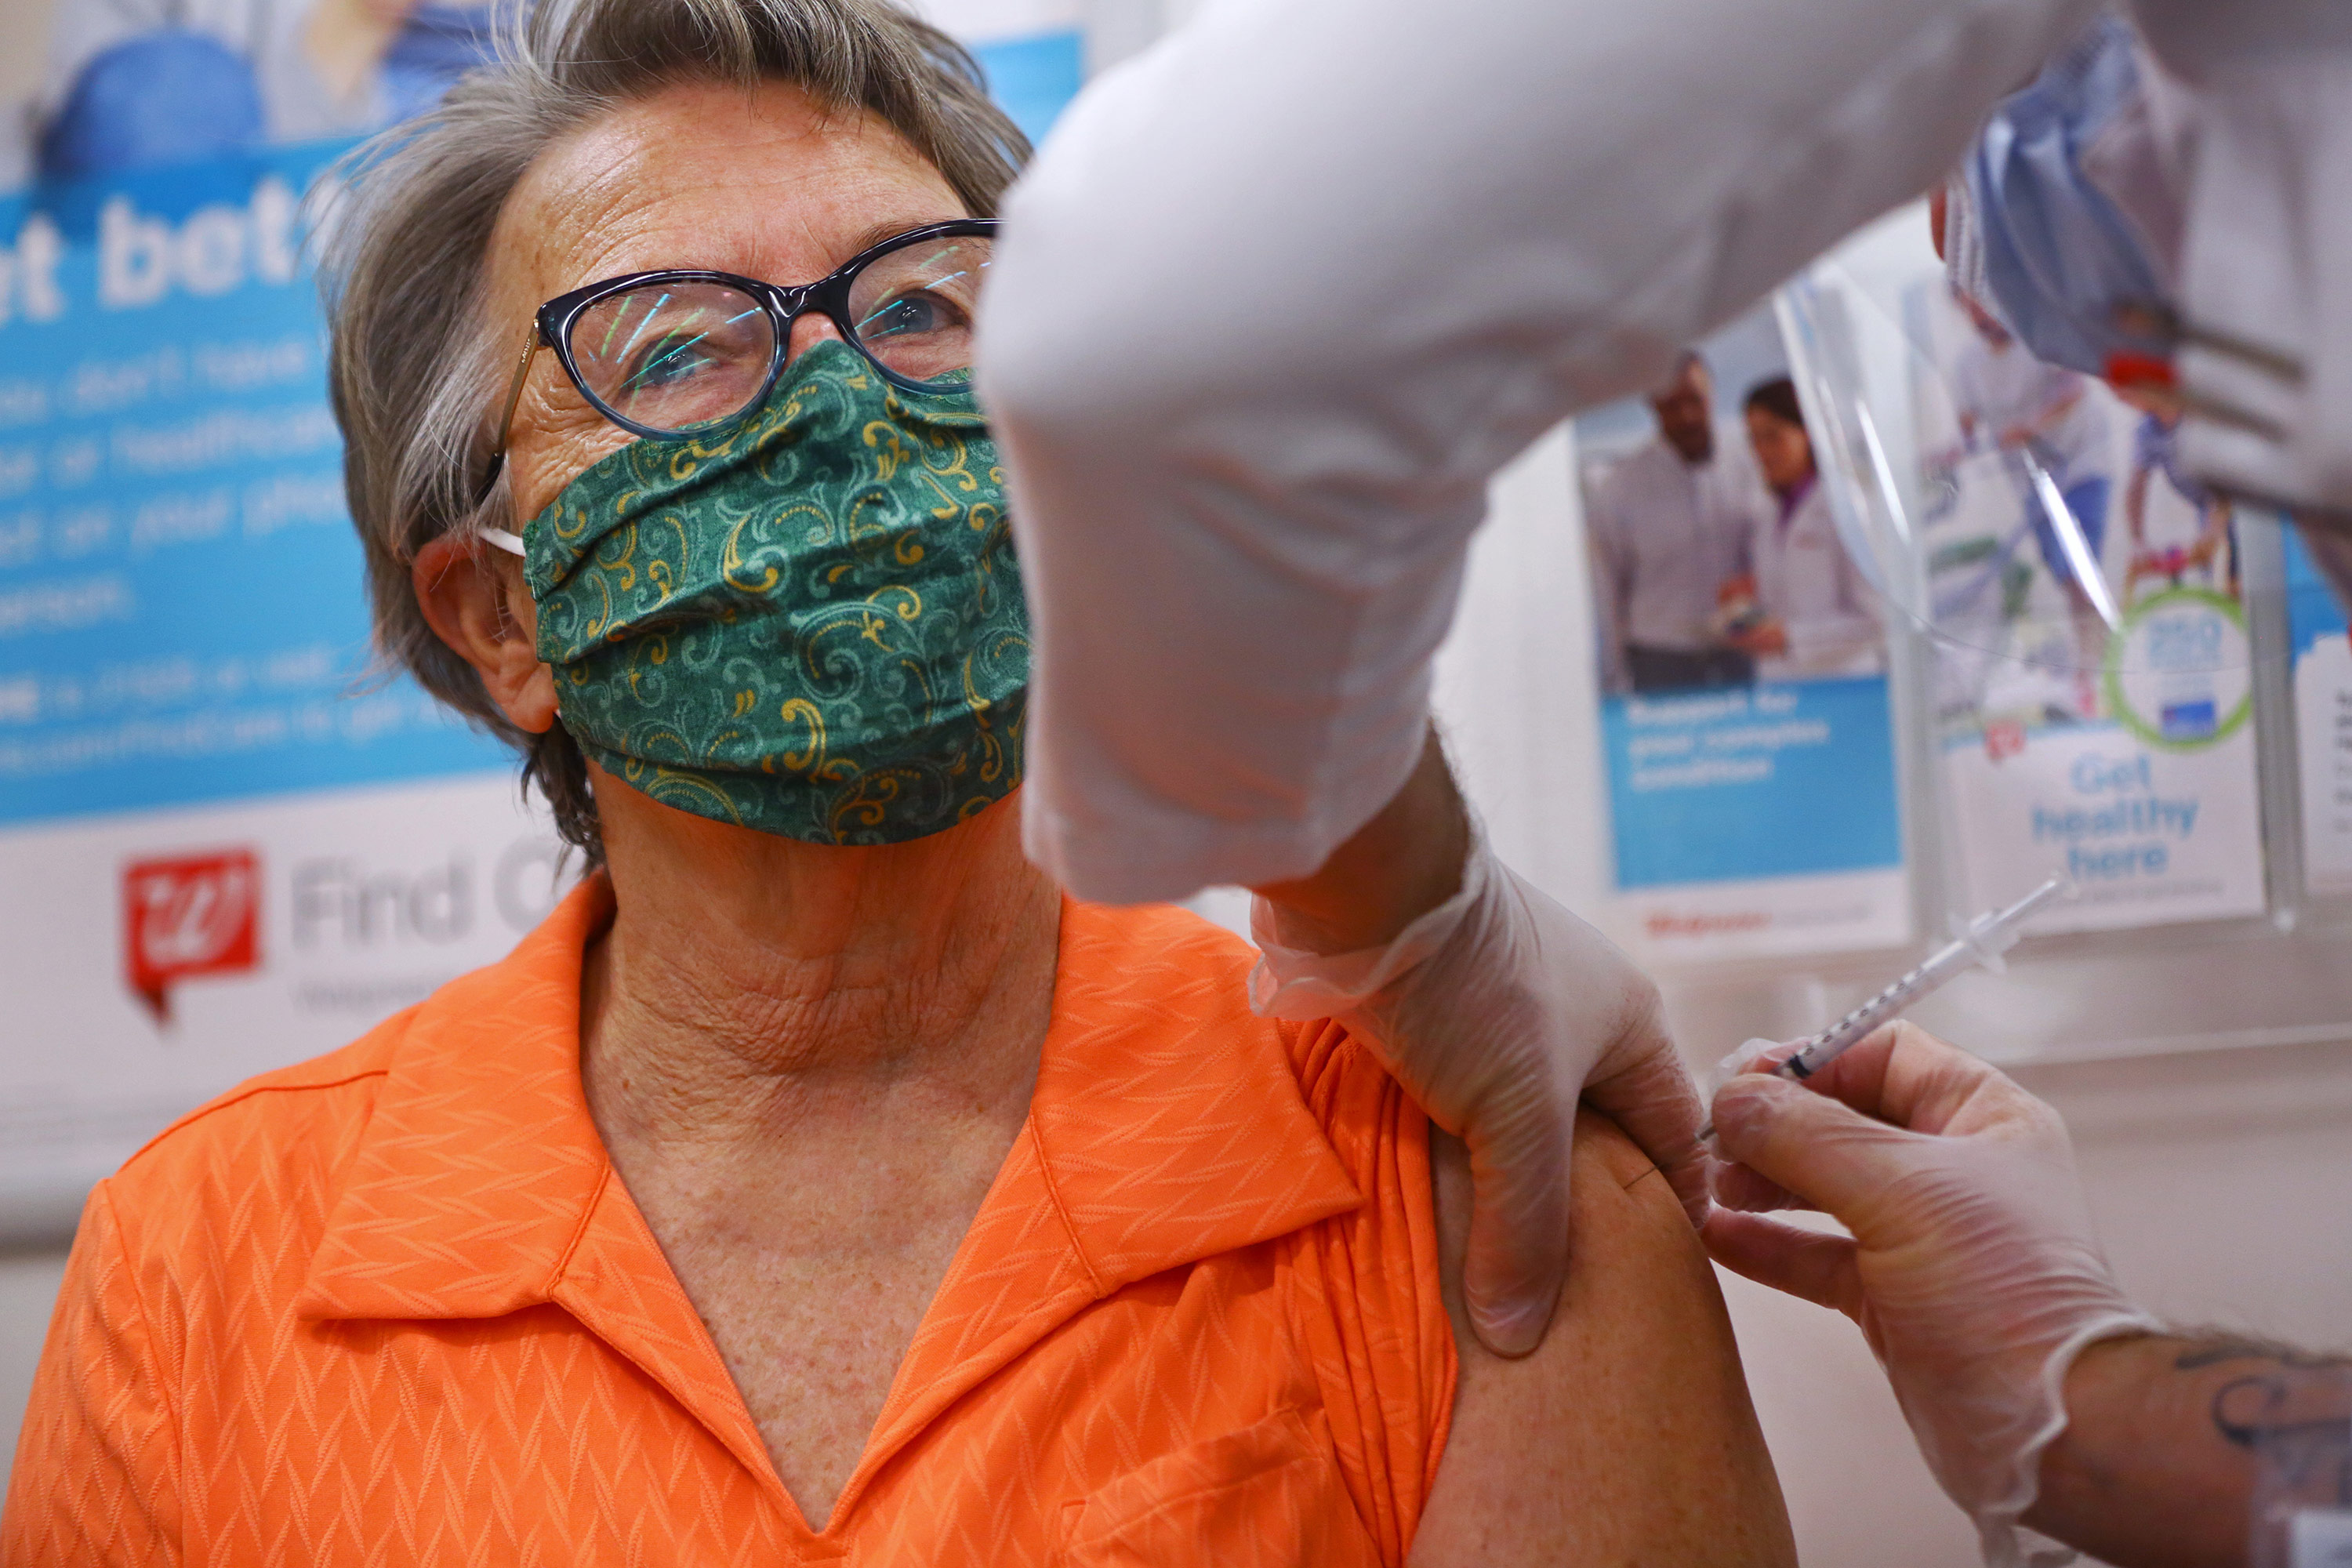 A pharmacist administers a Covid-19 vaccine at a Walmart Pharmacy in Danvers, Massachusetts, on February 1.